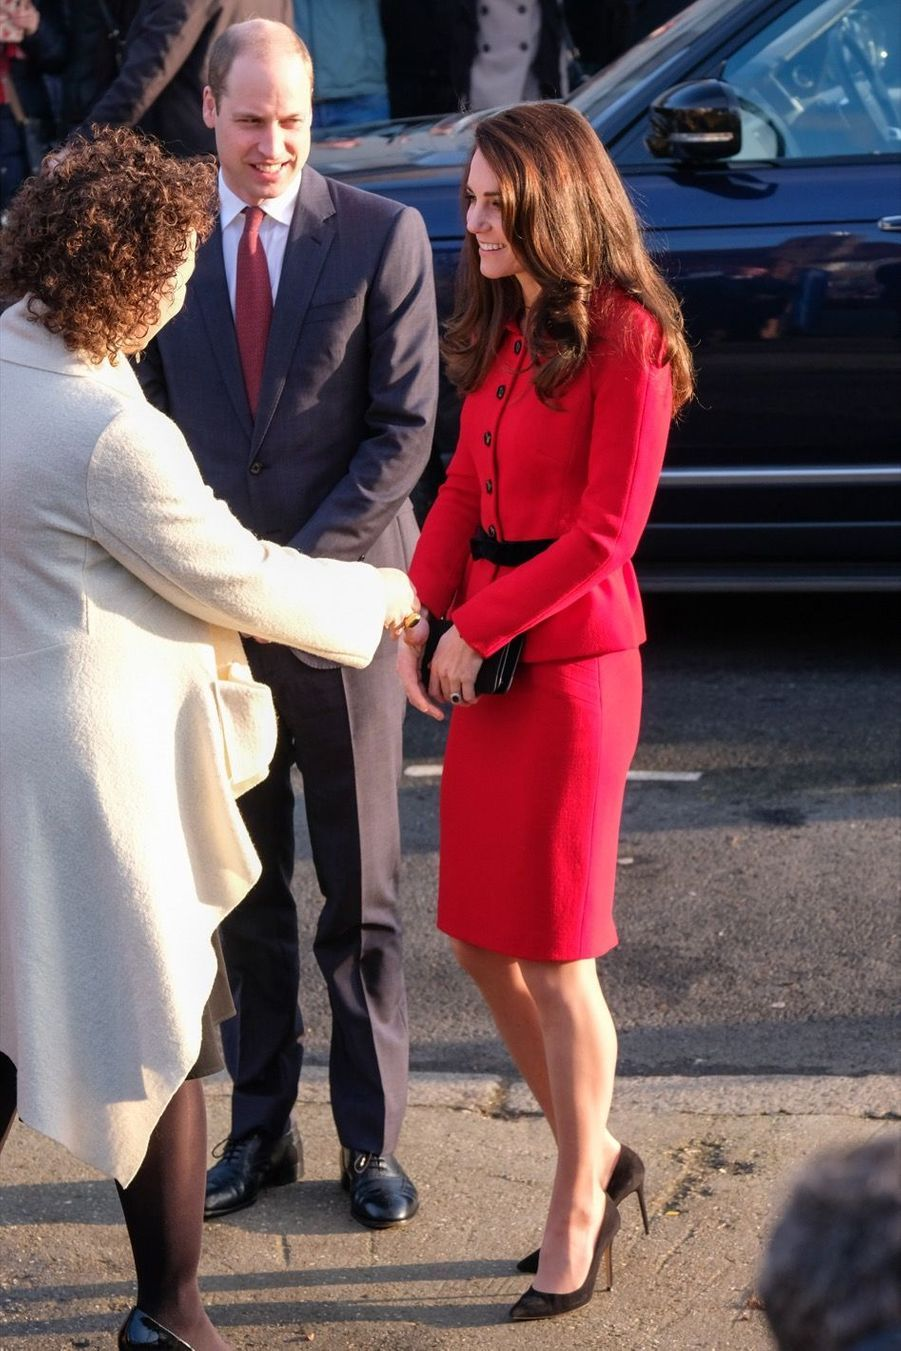 Kate Middleton Et Le Prince William Visitent L'école Primaire Mitchell Brook, À Londres 1